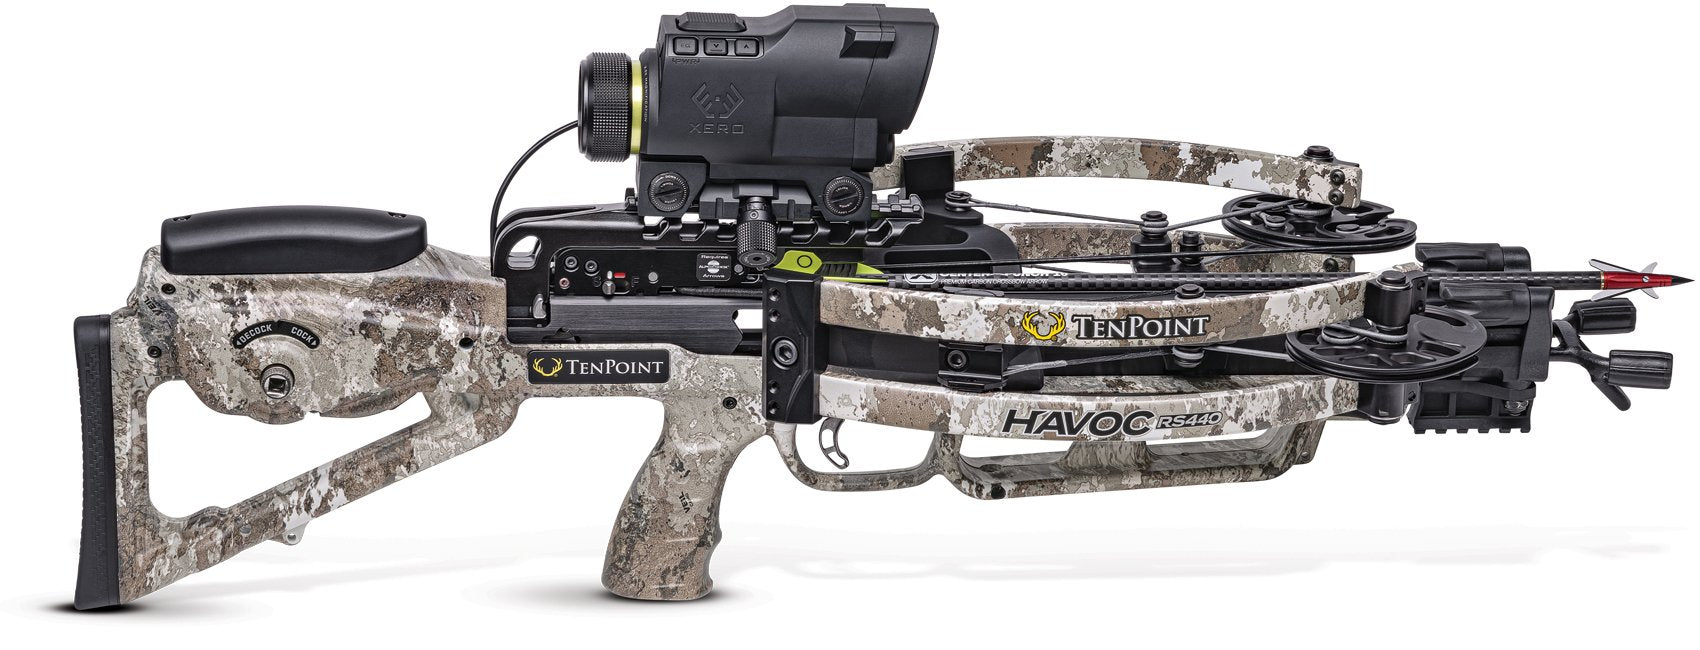 TenPoint Havoc RS440 Xero Crossbow Package for sale at Kiigns Hunting.